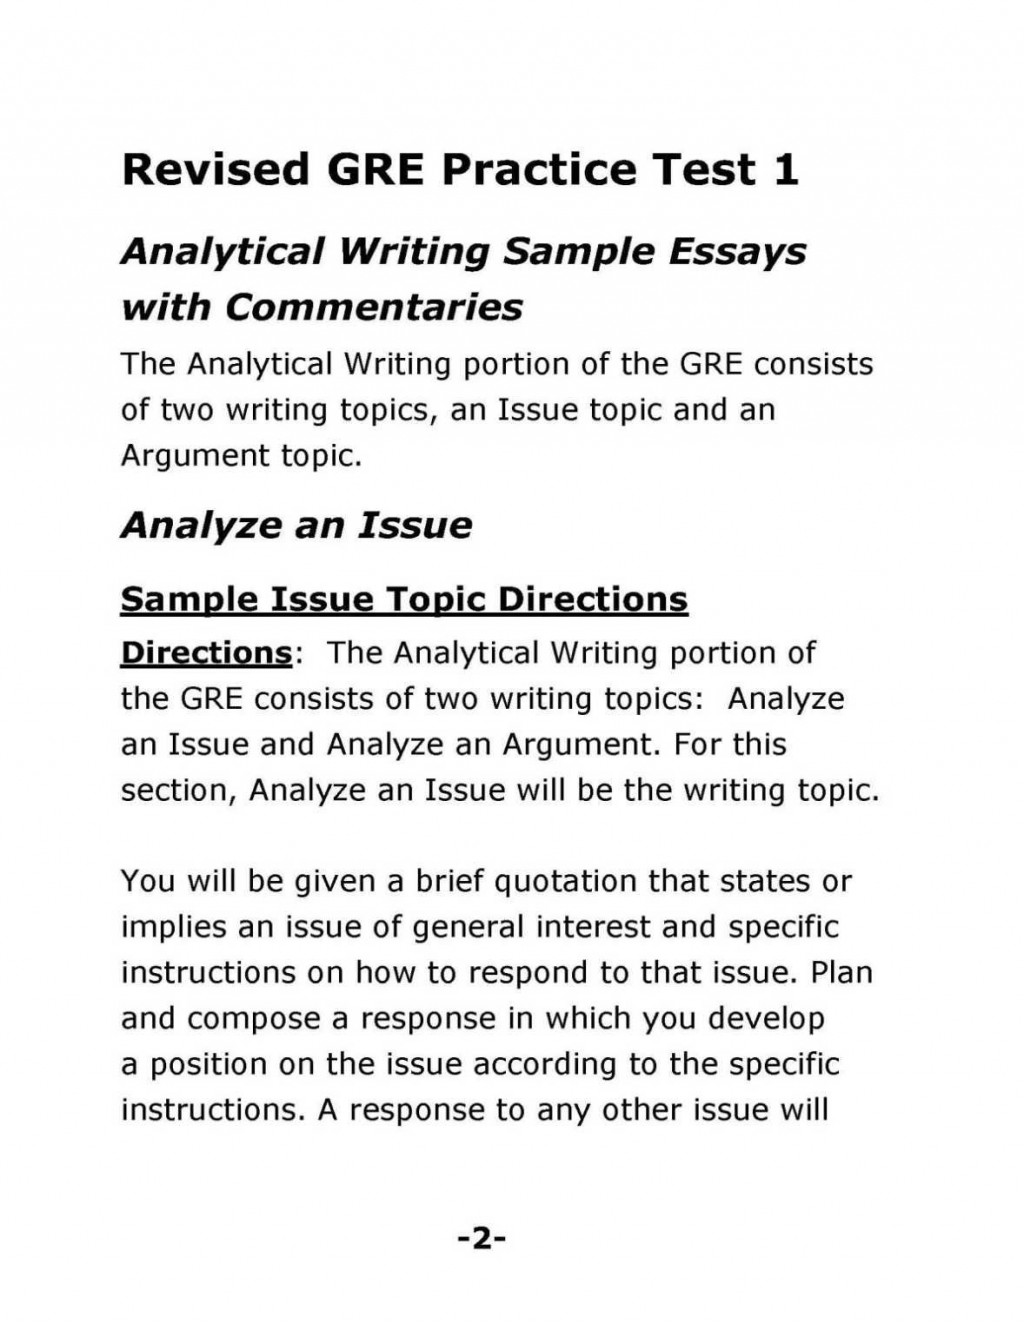 006 Essay Example Biodiversity Topics Special Wallpapers Gre Good Score Bio Diversity About On With Awa Examples Pdf Topic Issue To Use Ets Phenomenal Questions Large